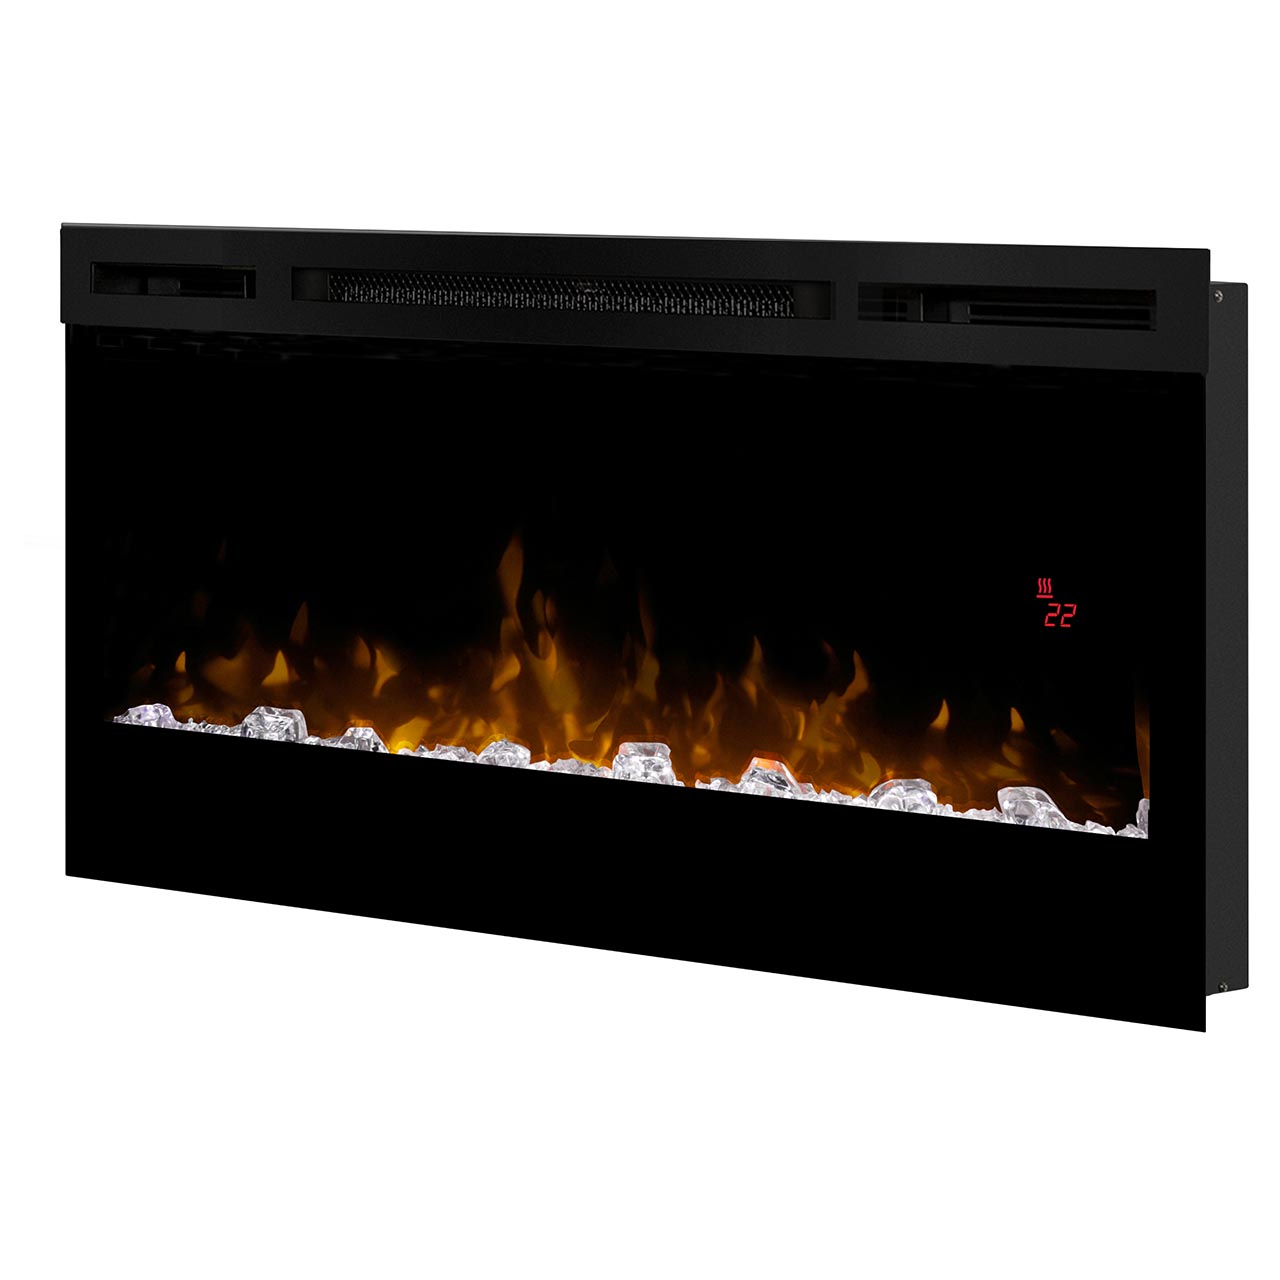 "Fireplace Electric Wall Mount Dimplex 34"" Blf3451 Prism Wall Mount Electric Fireplace"